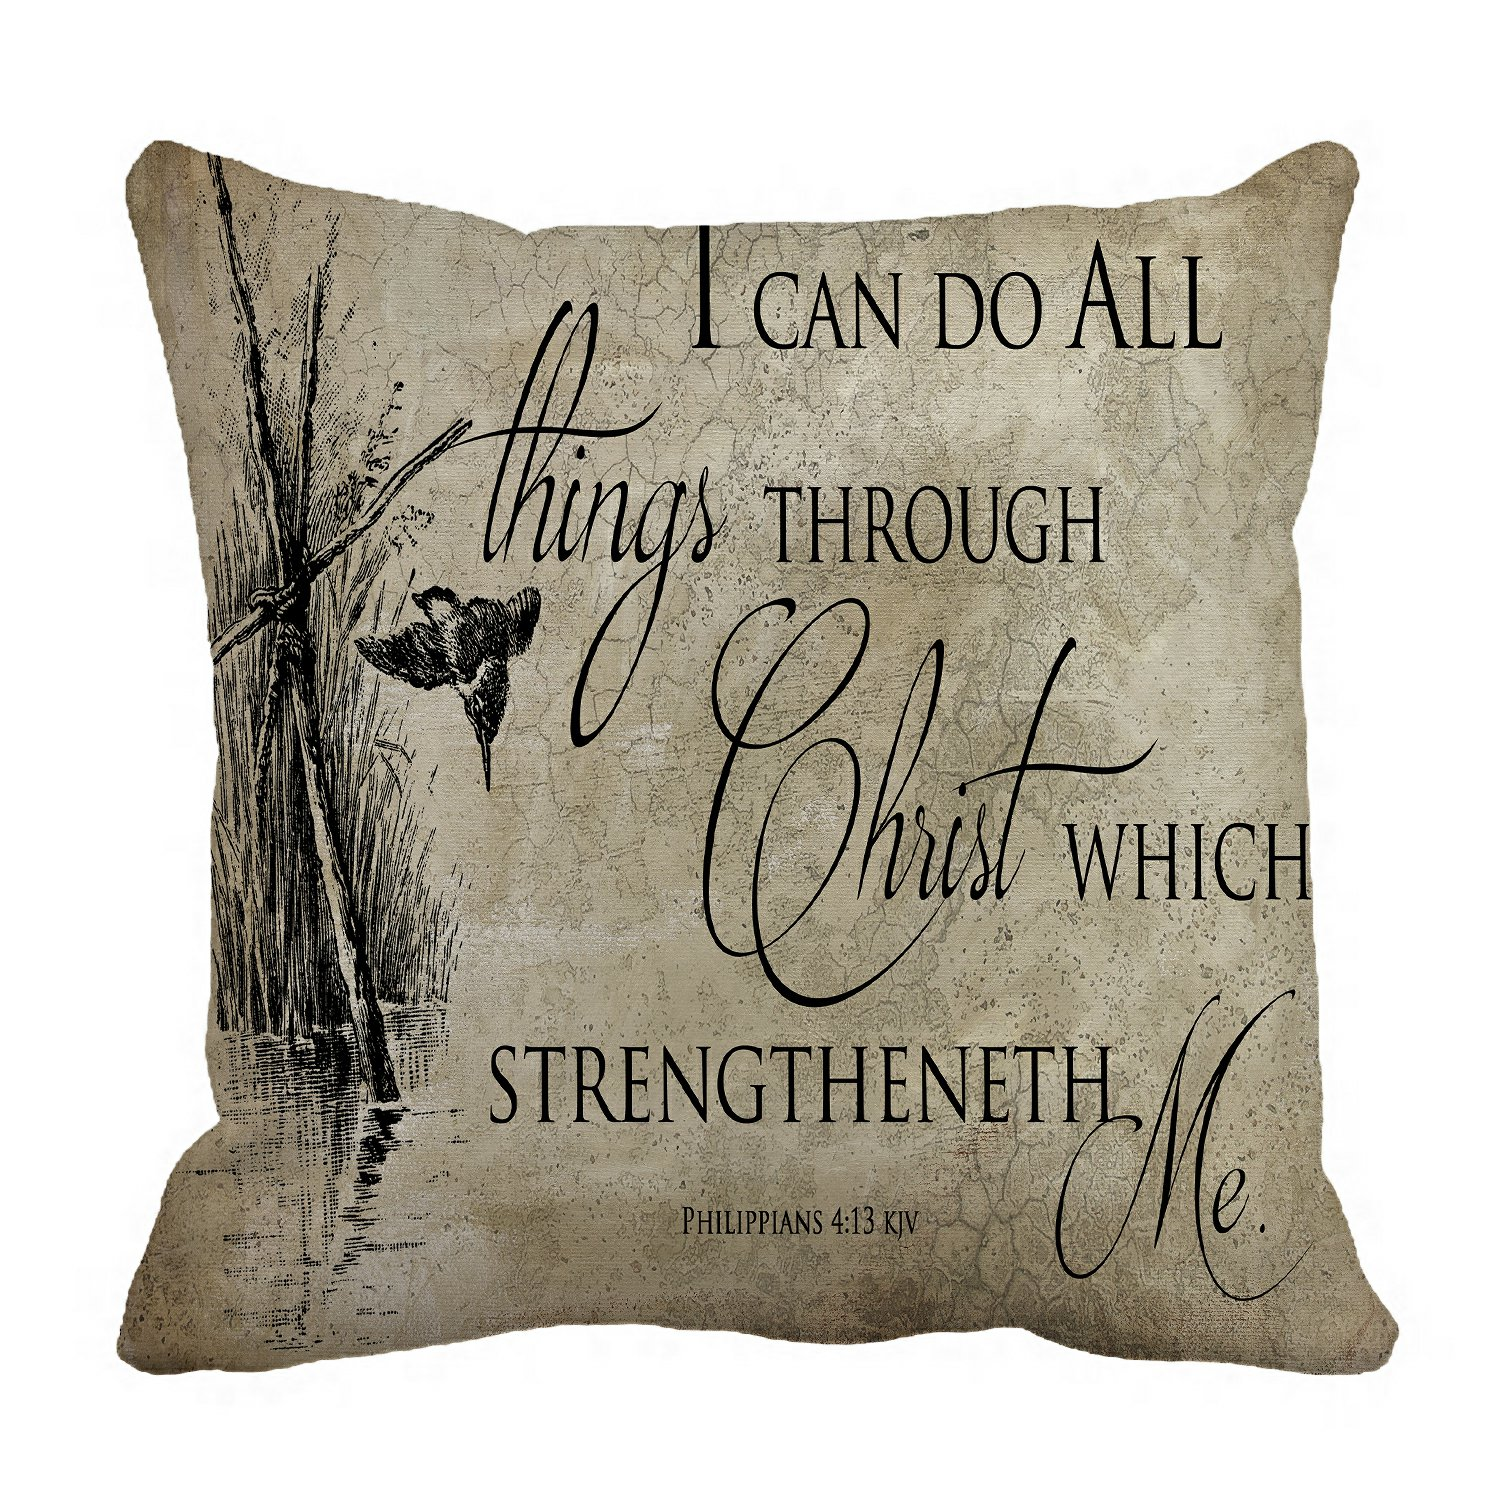 phfzk inspirational pillow case bible verse pillowcase throw pillow cushion cover two sides size 18x18 inches walmart com